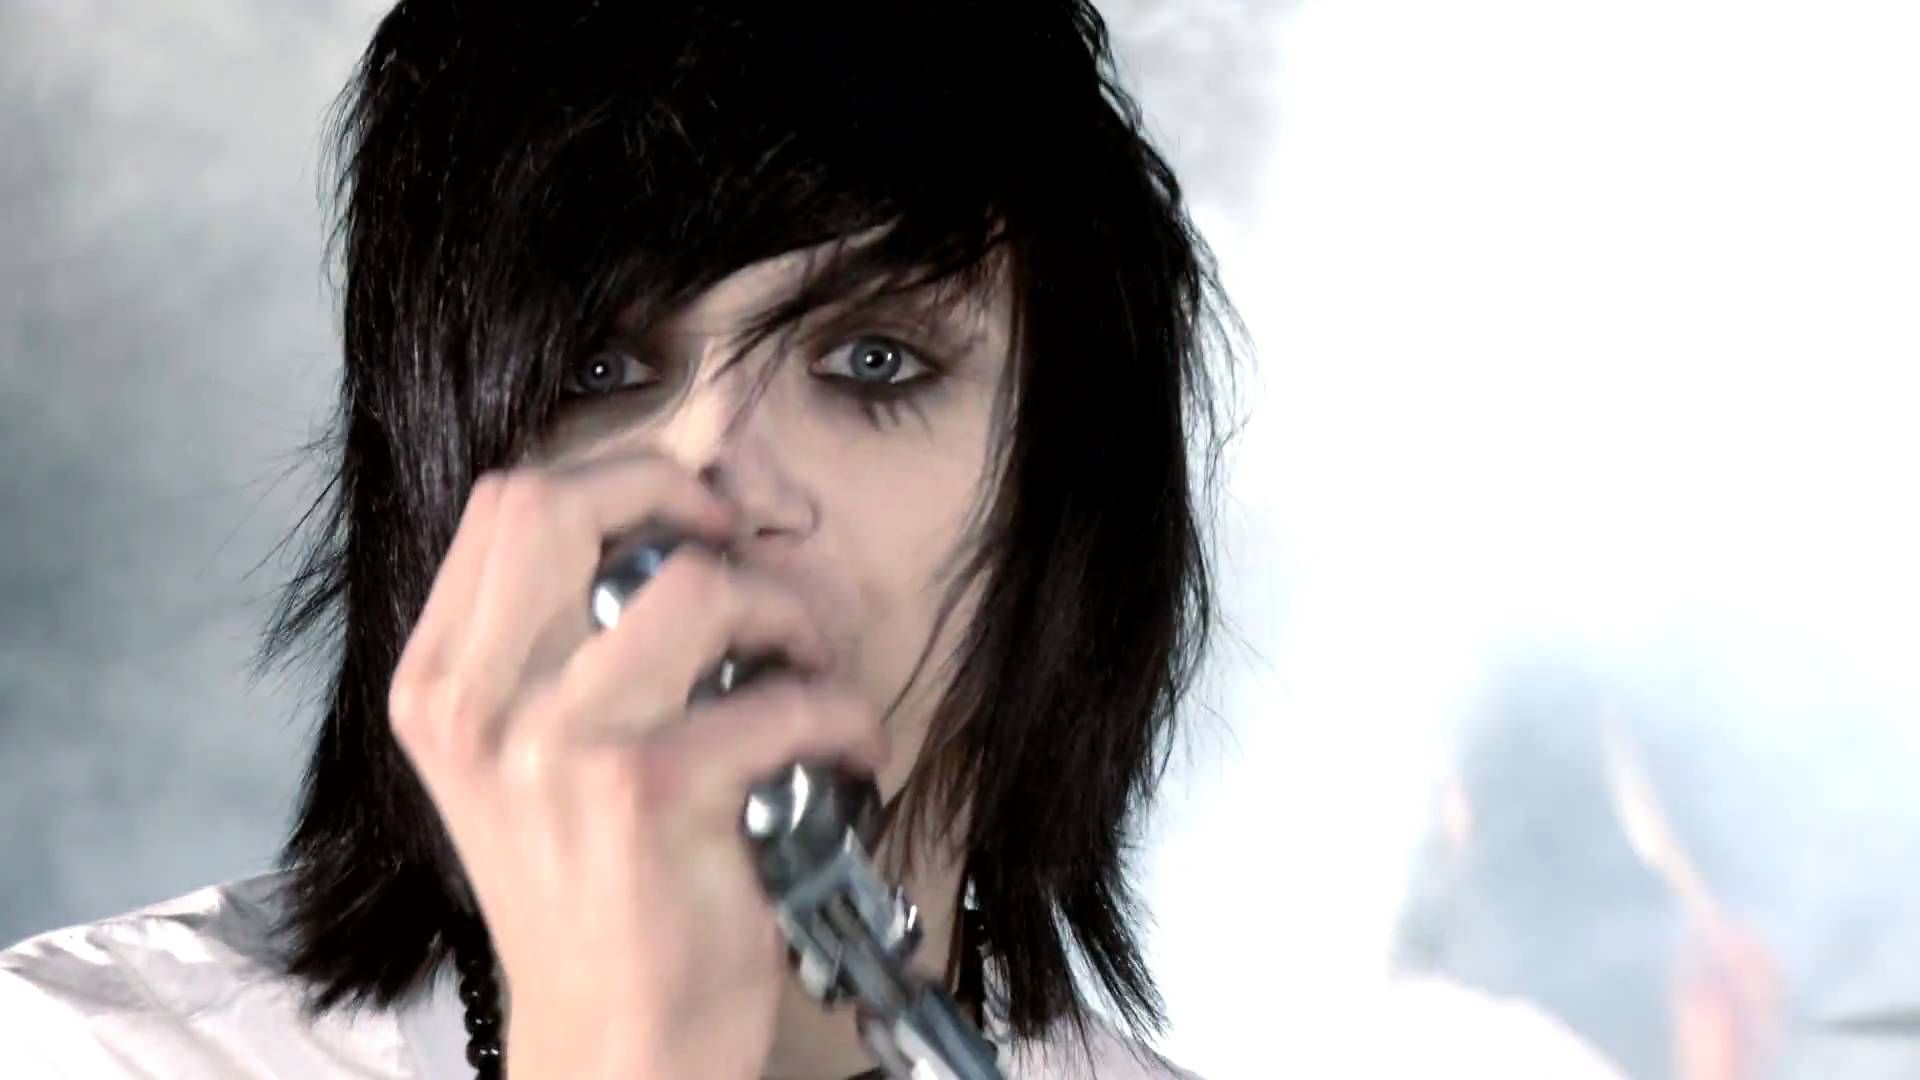 Black Veil Brides Knives And Pens Official Video Still My